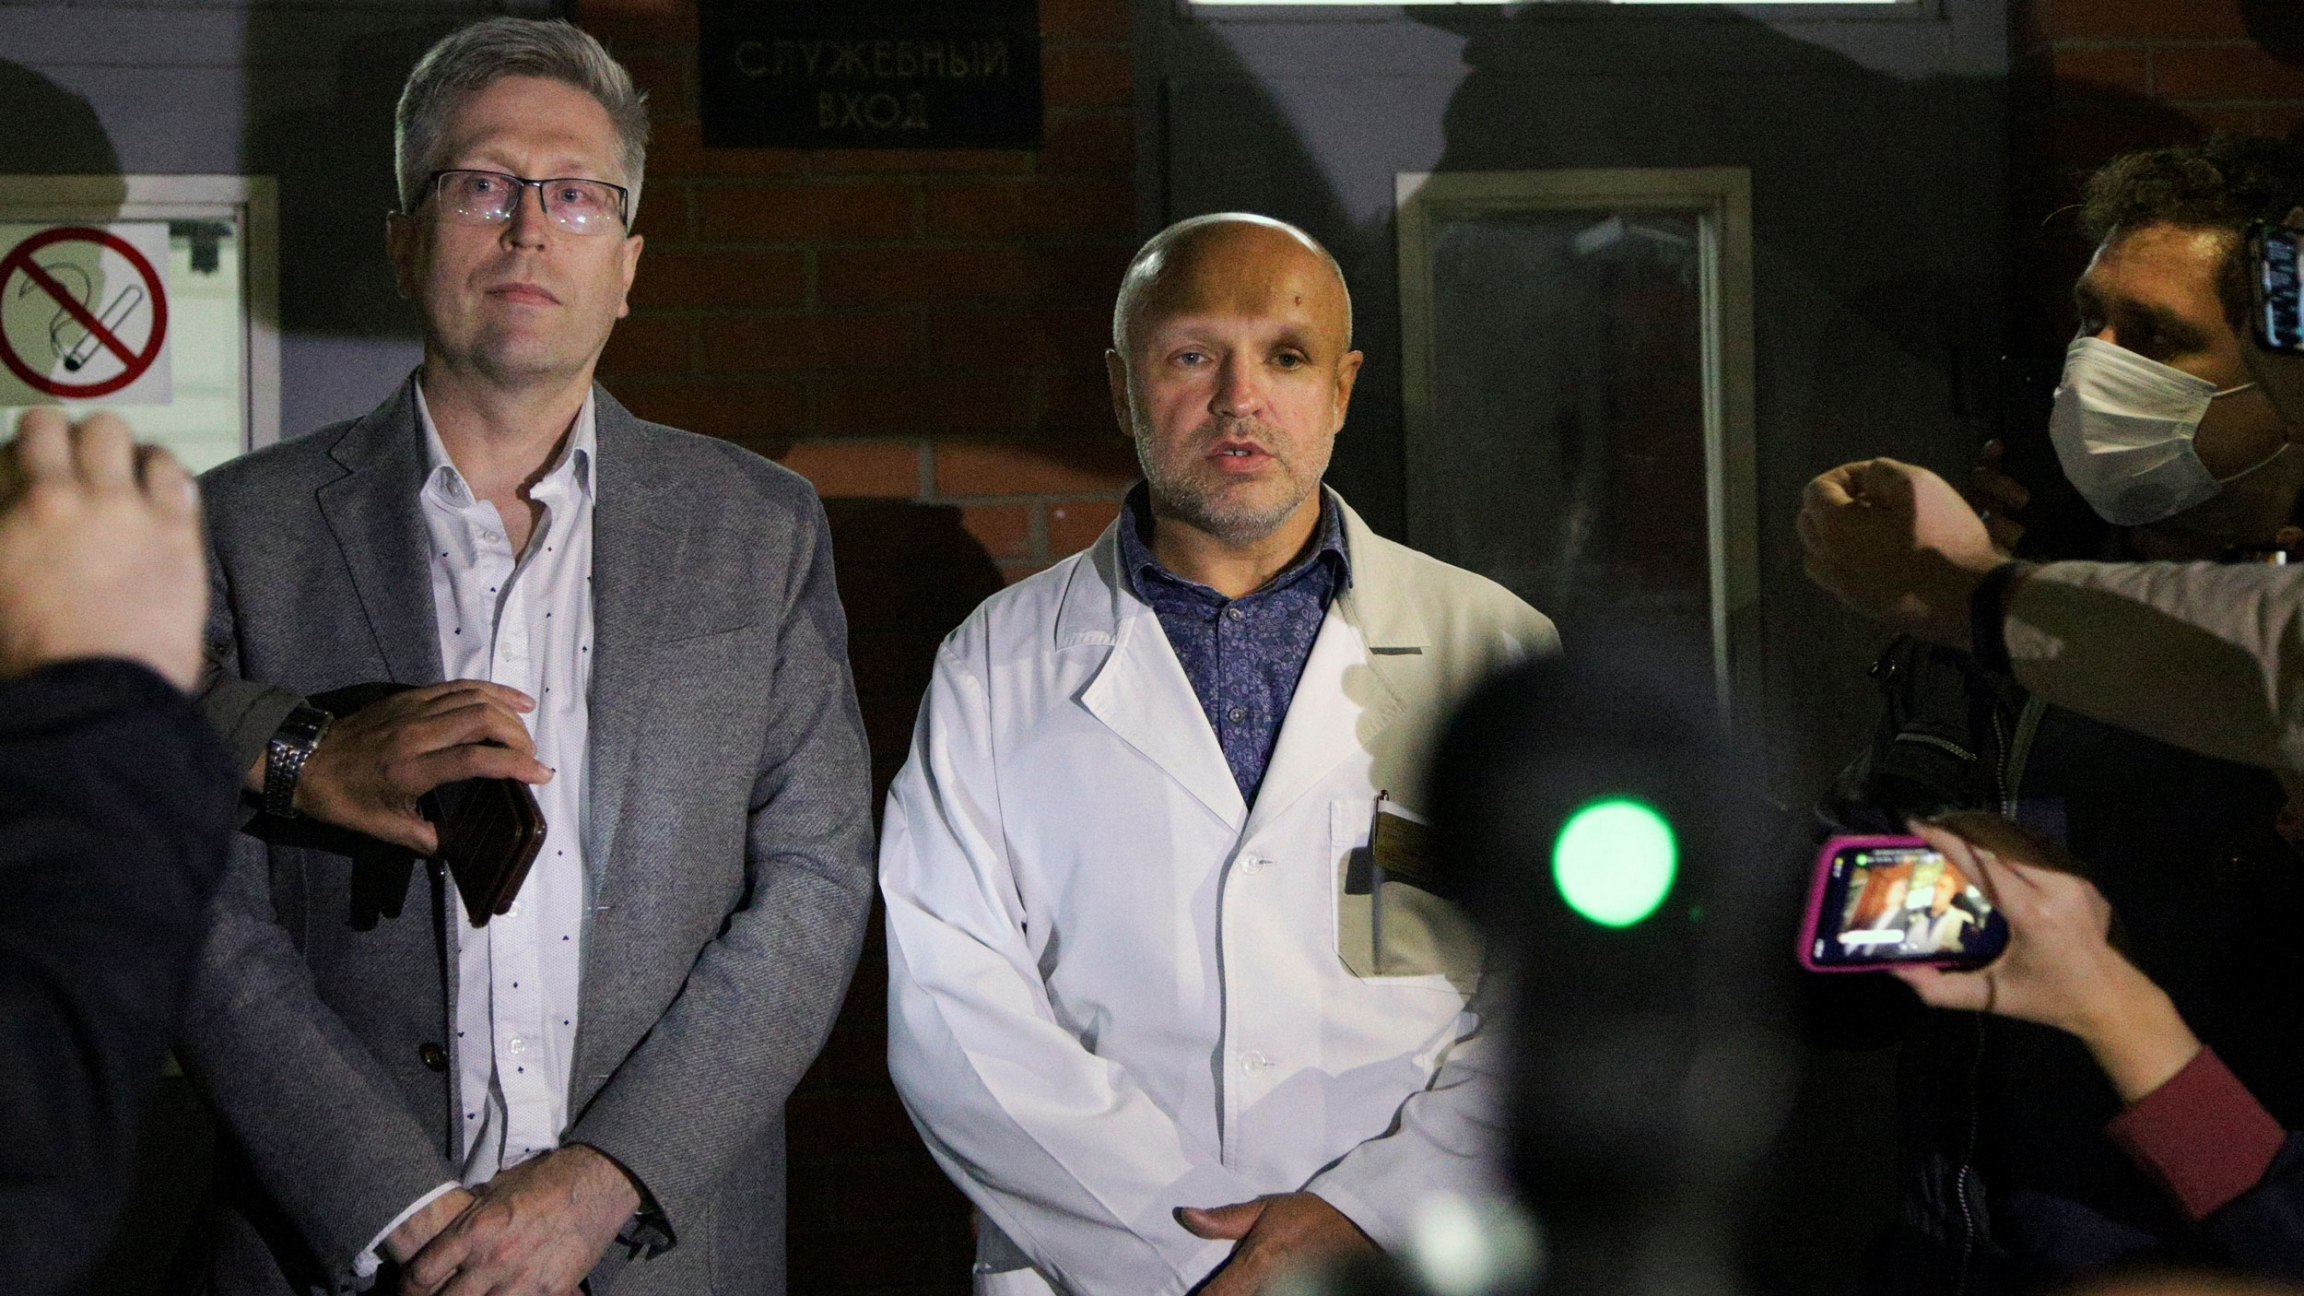 A man is shown standing with his hands folded and wearing a white medical jacket with members of the media nearby.